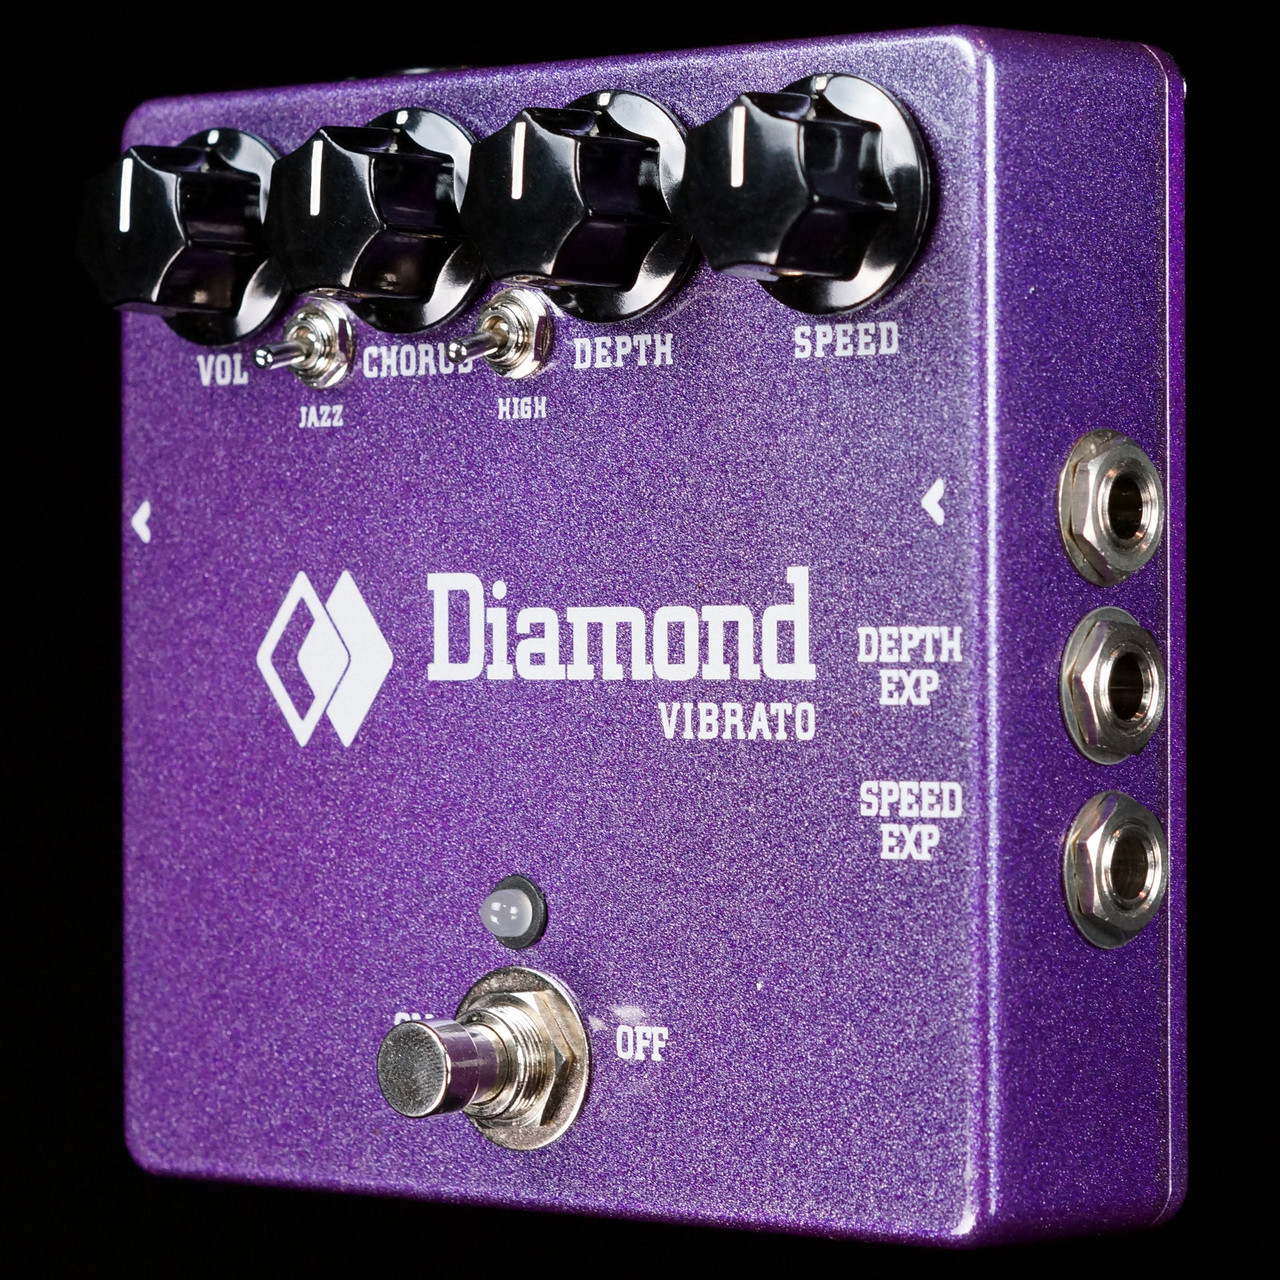 Diamond Analog Vibrato VIB1 3